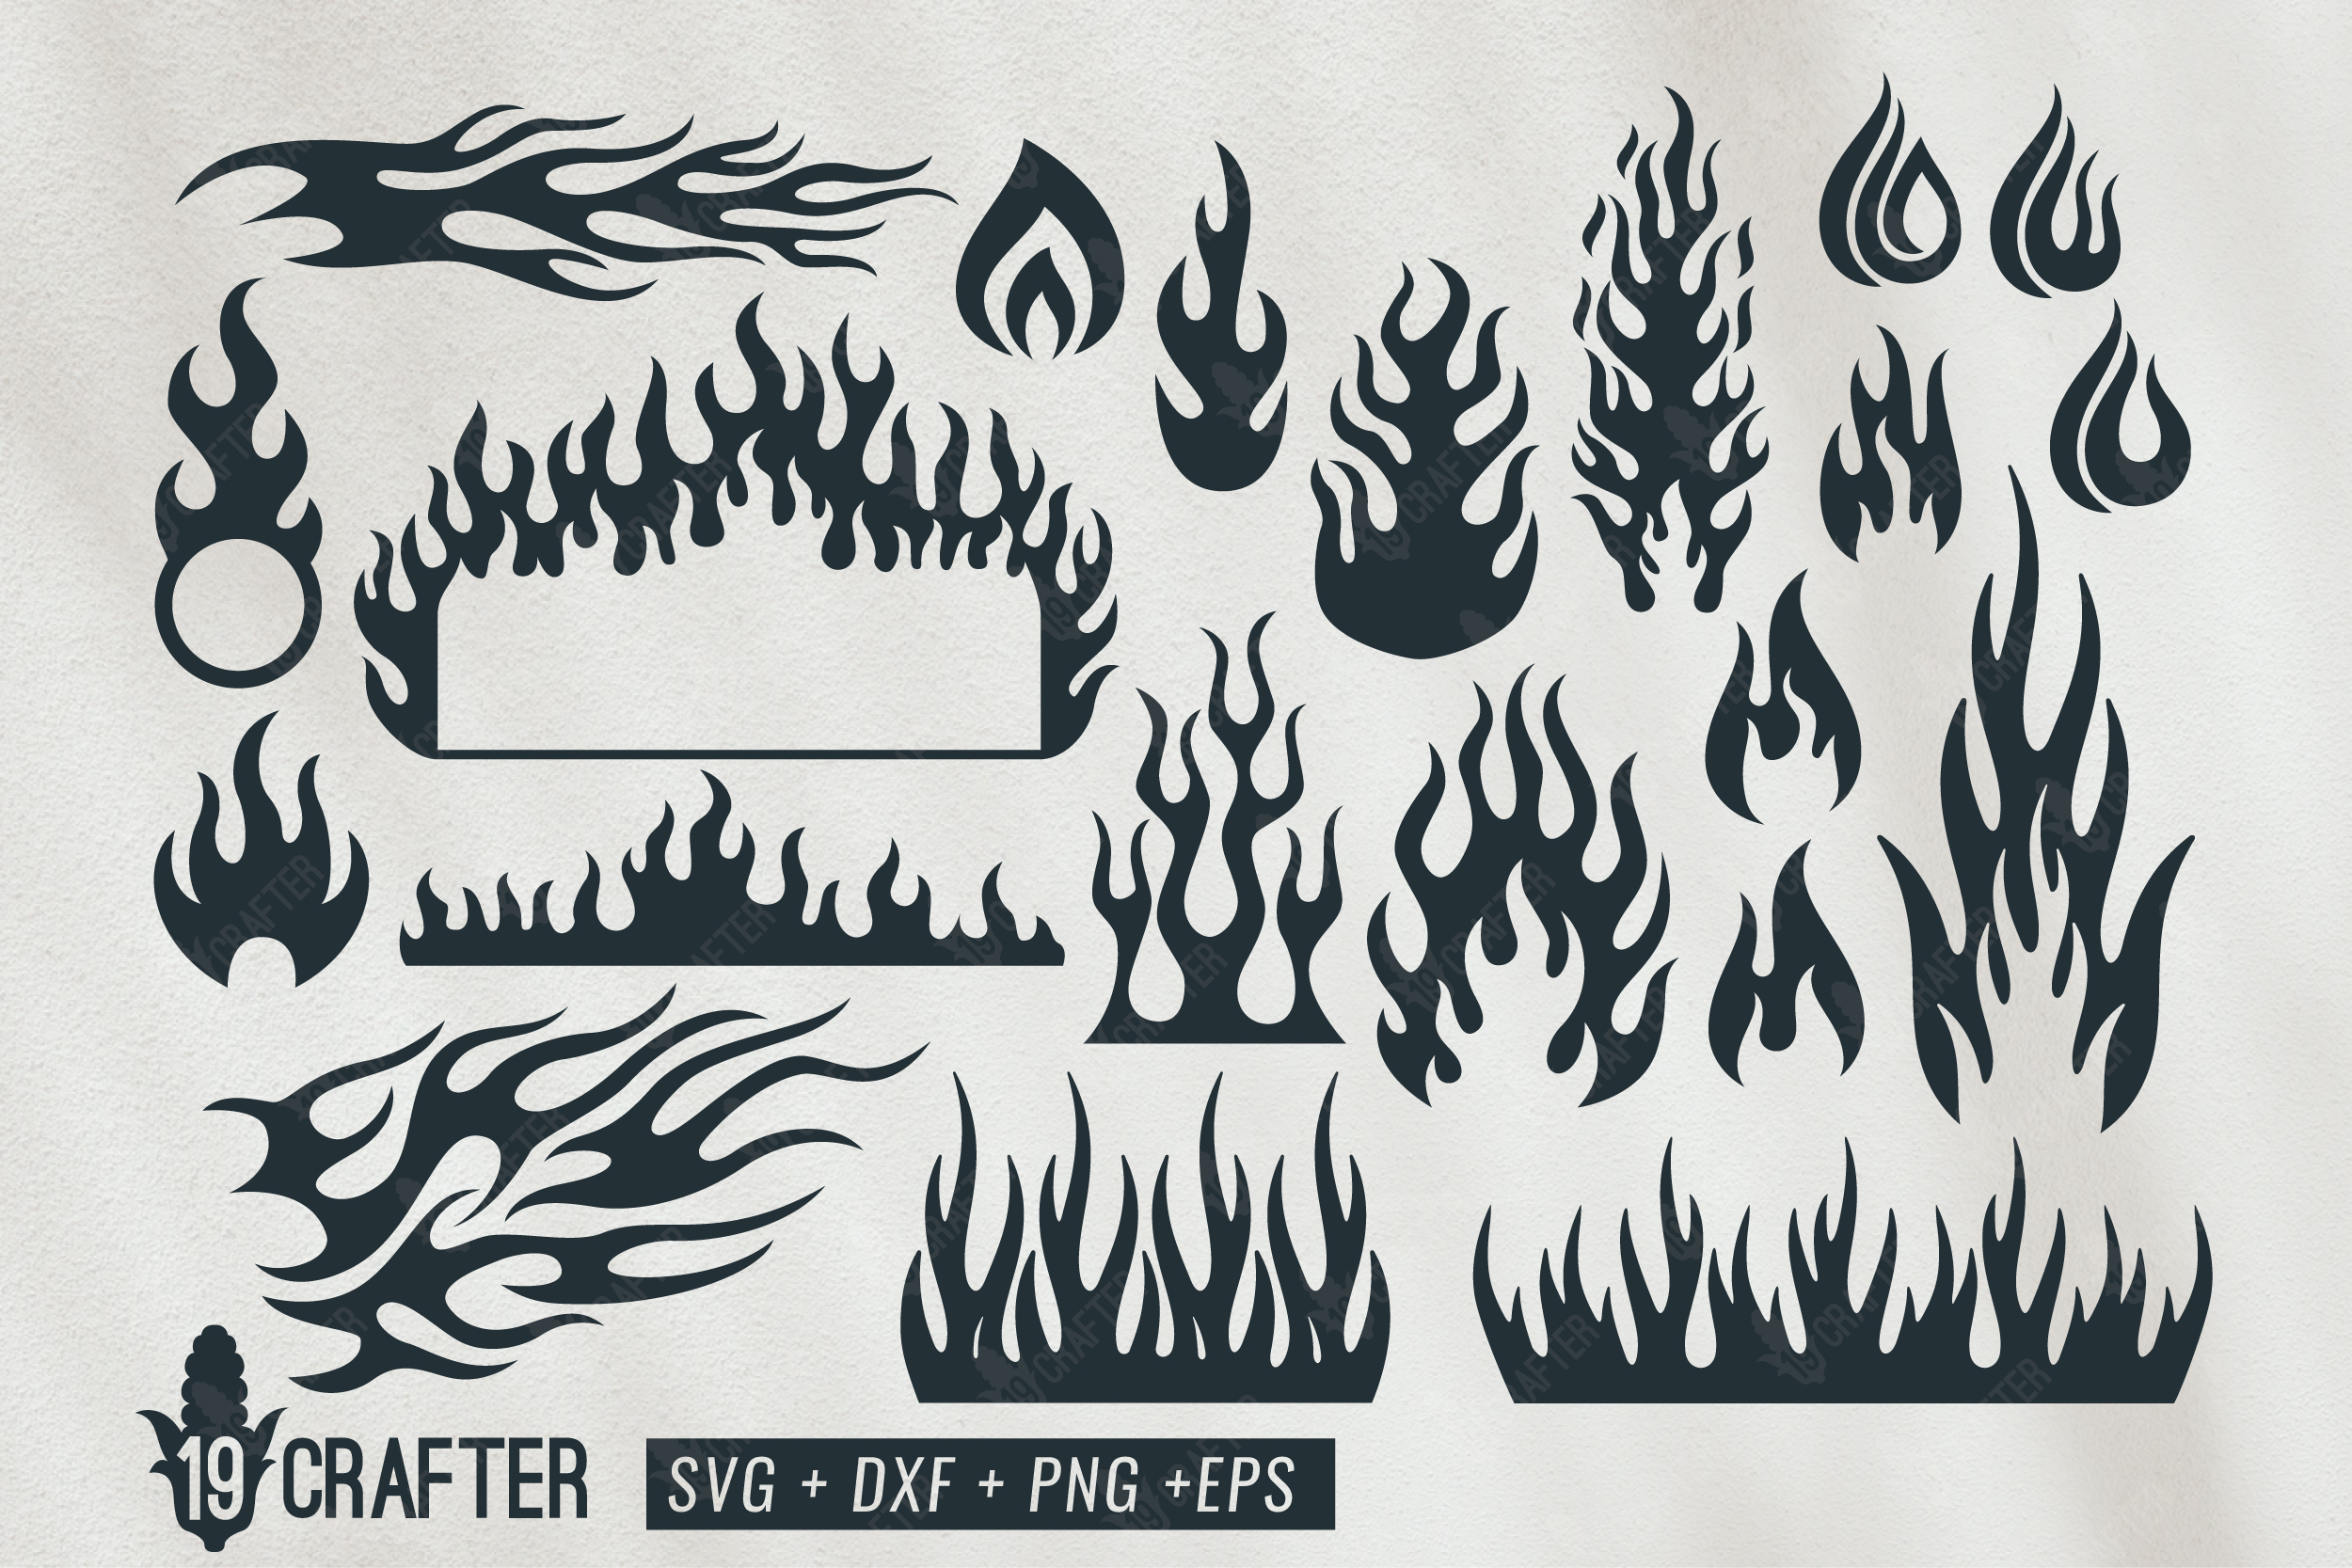 Download Free Fire Flame And Fire Tribal Svg Bundle Graphic By Great19 for Cricut Explore, Silhouette and other cutting machines.